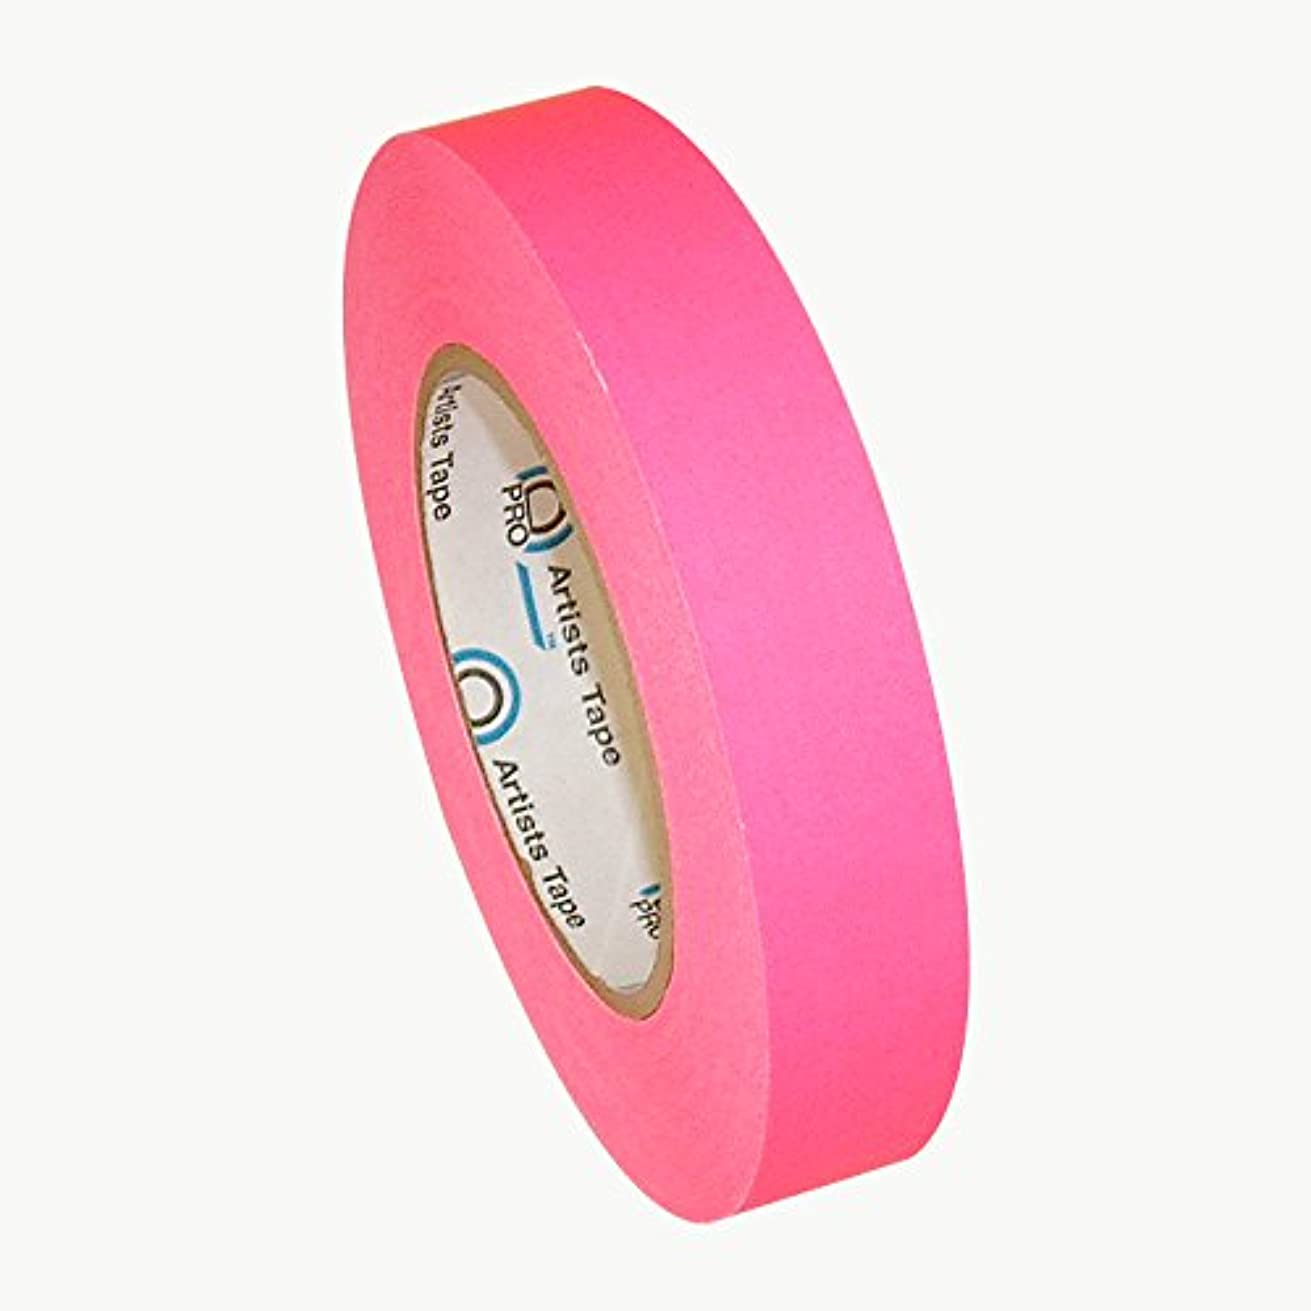 Pro Tapes Artist Tape 1 Inch Fluorescent Pink